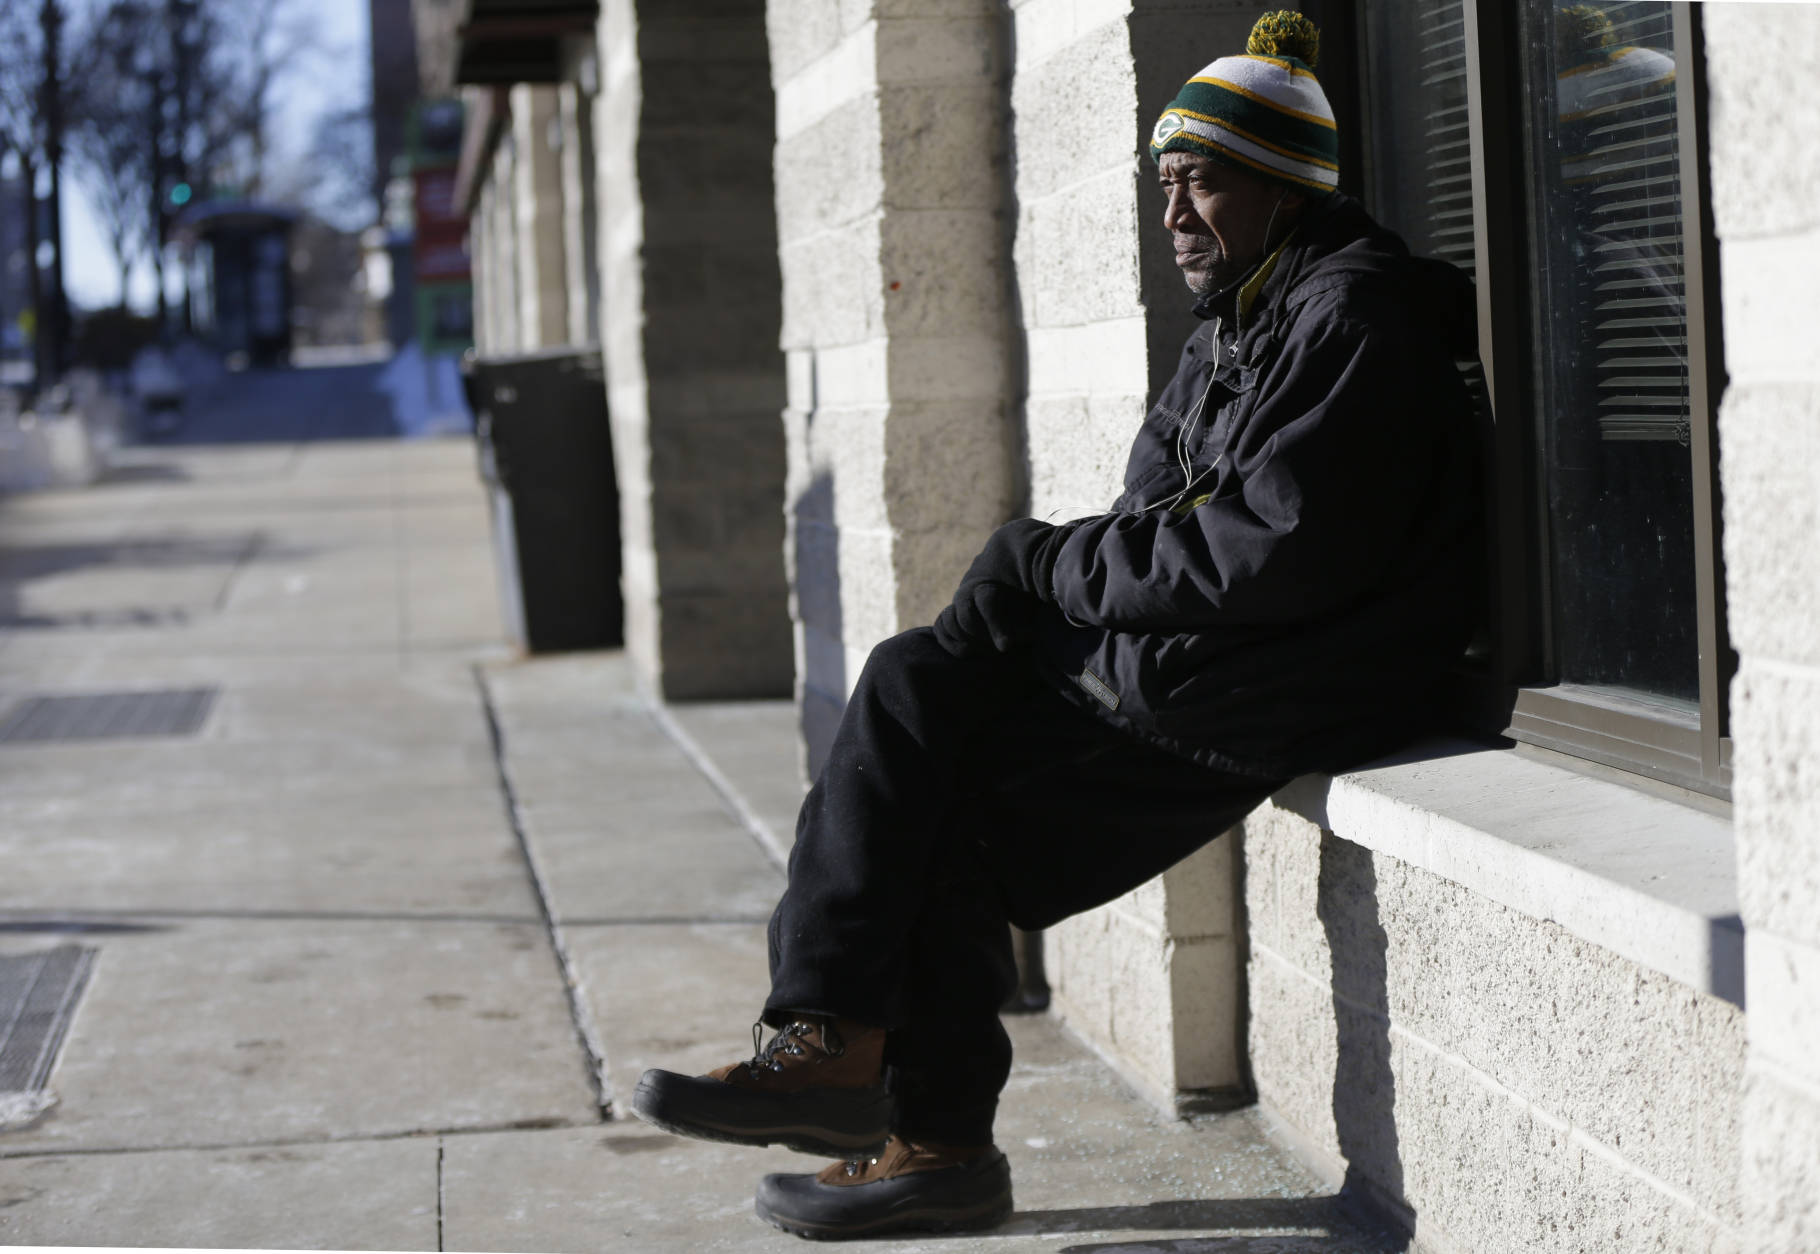 Kenneth High, who is homeless, sits outside a business on W. Wisconsin Ave. near N. James Lovell St. on Tuesday, Dec. 13, 2016, in Milwaukee, Wis. A blast of arctic air blew into Wisconsin Tuesday, dropping temperatures to dangerous levels. (Mike De Sisti  /Milwaukee Journal-Sentinel via AP)